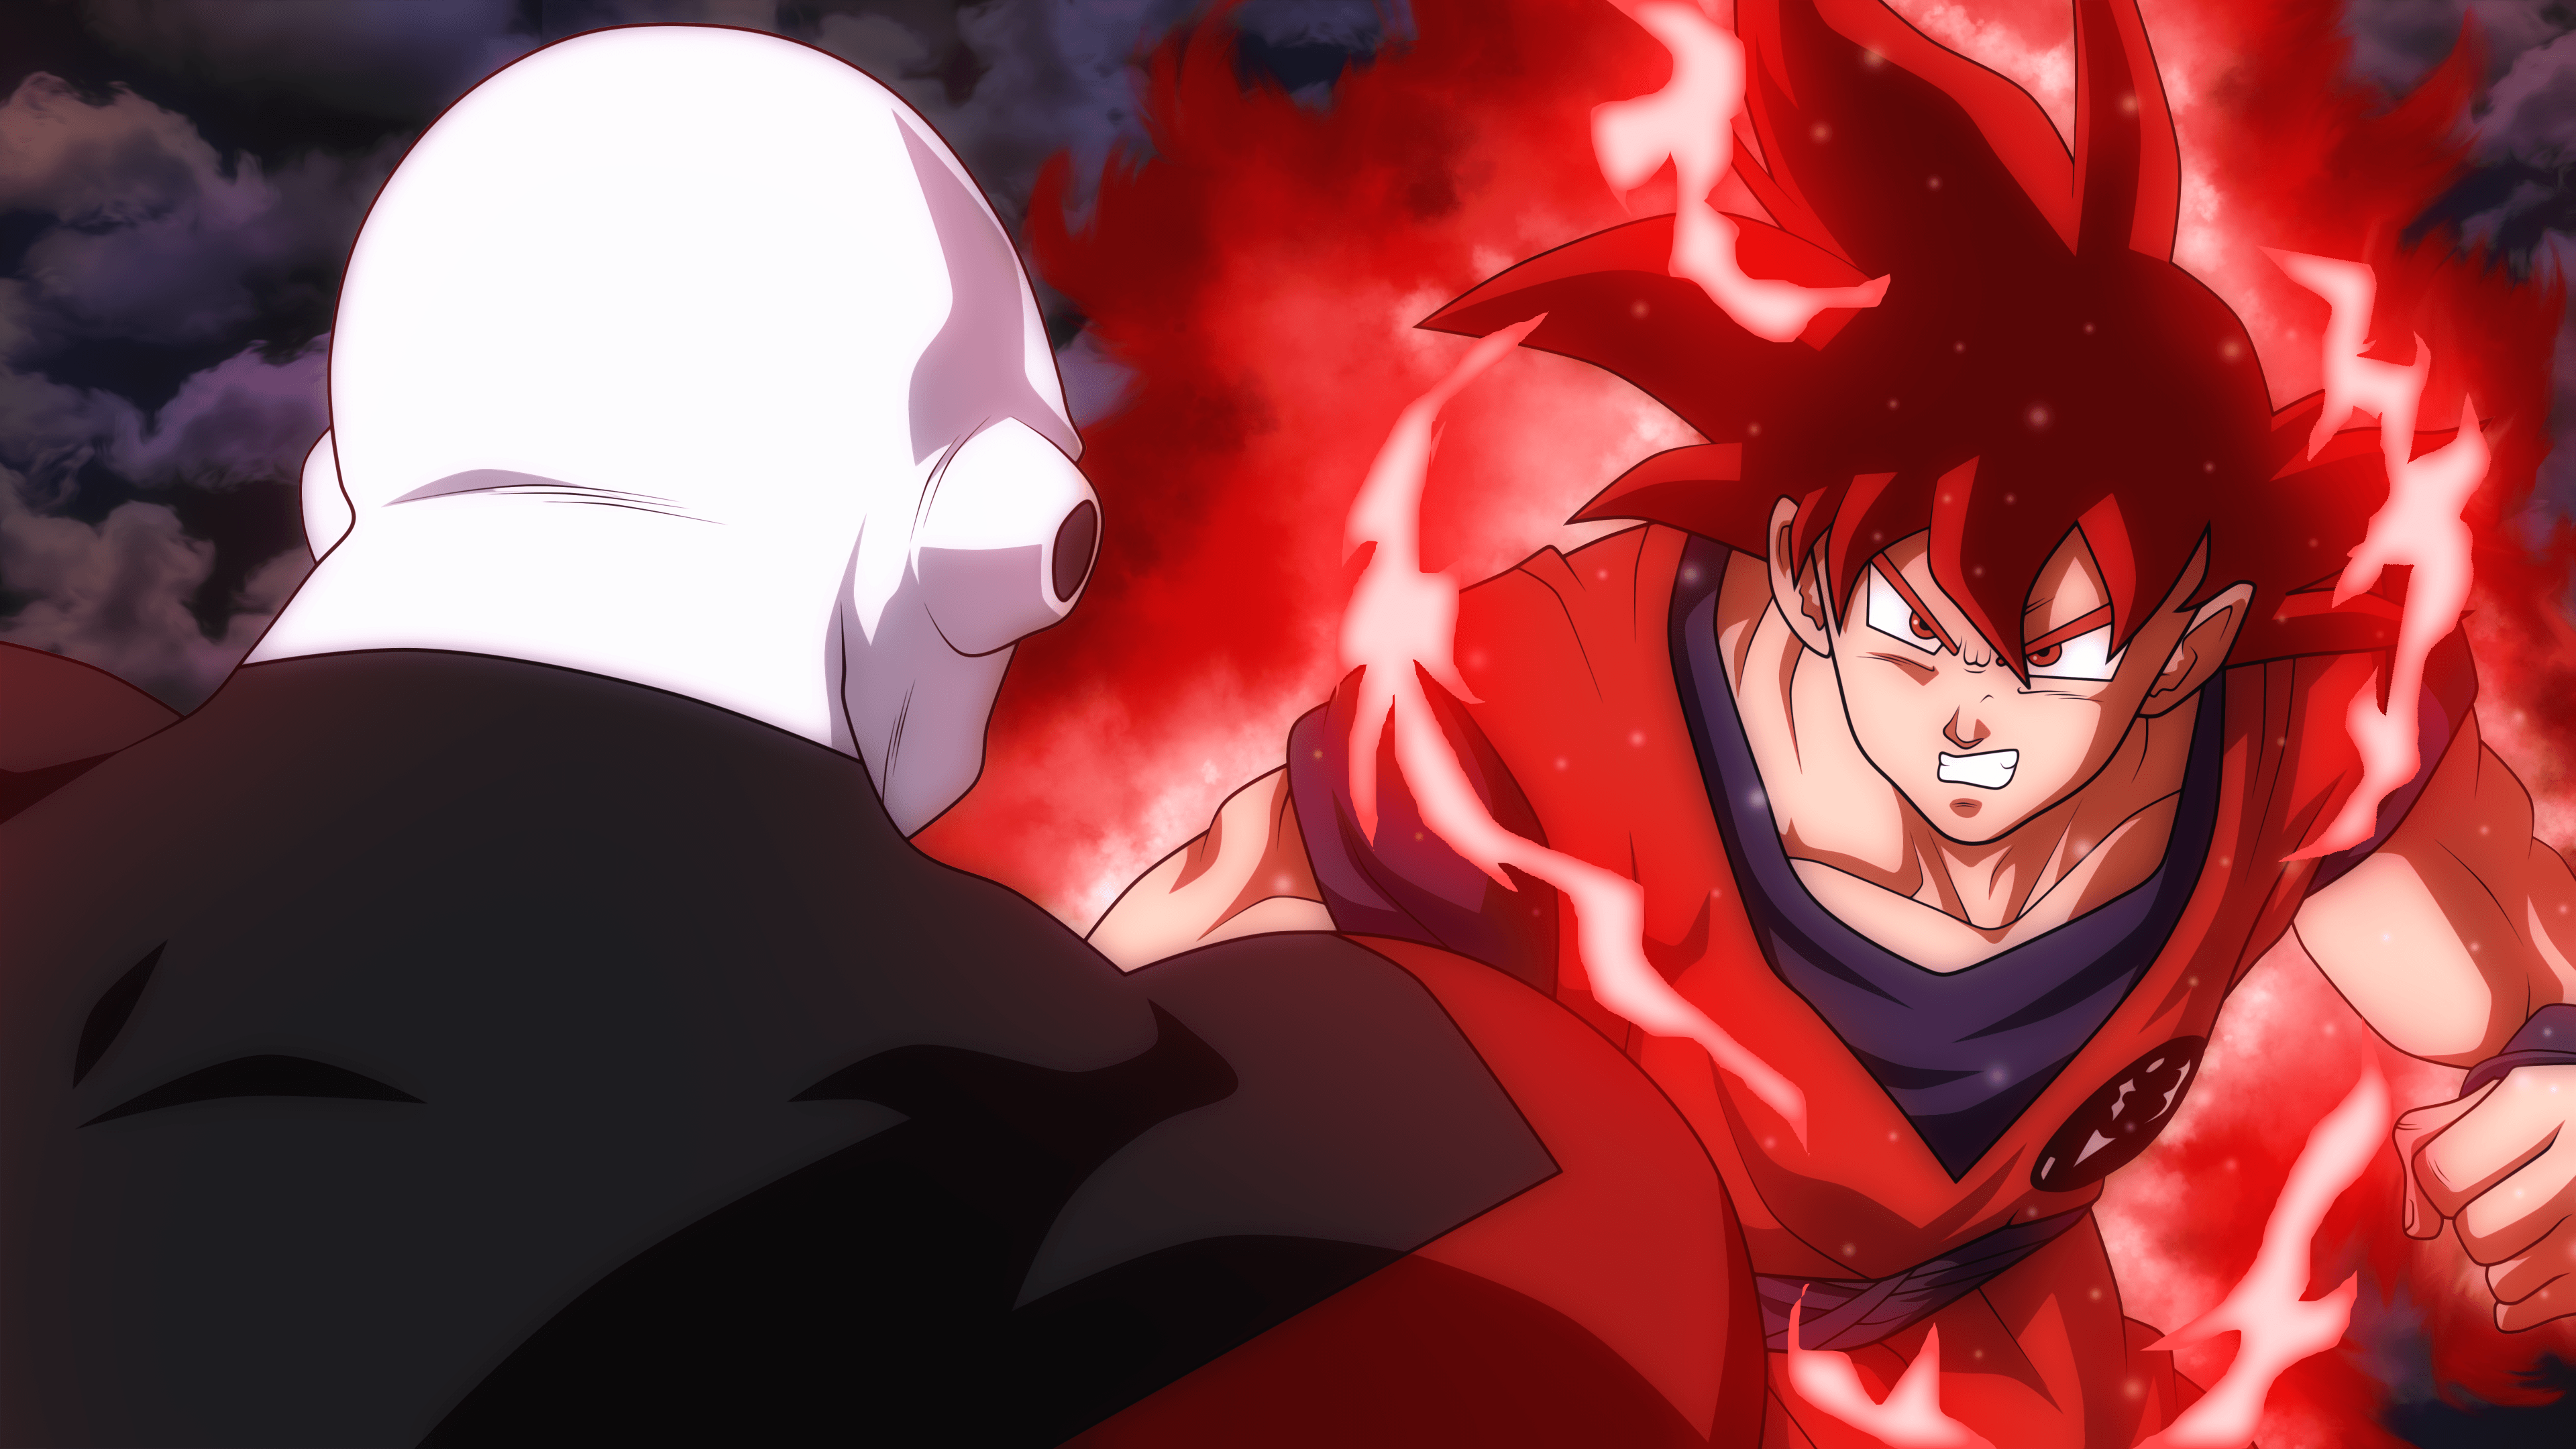 15 Jiren Dragon Ball HD Wallpapers